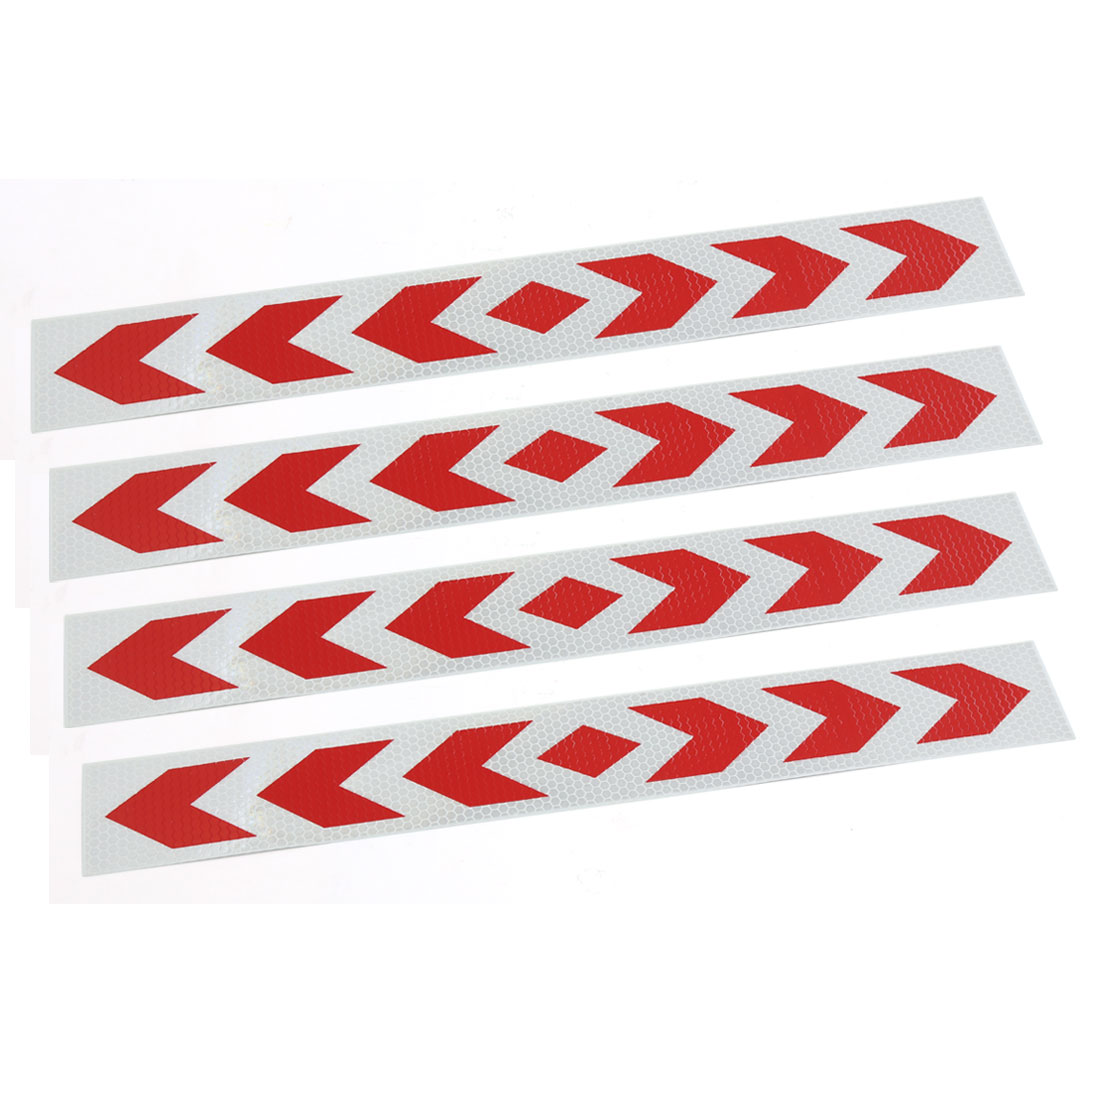 4 Pcs Red Arrows Printed Reflective Safety Sticker Decal Car Exterior Ornaments